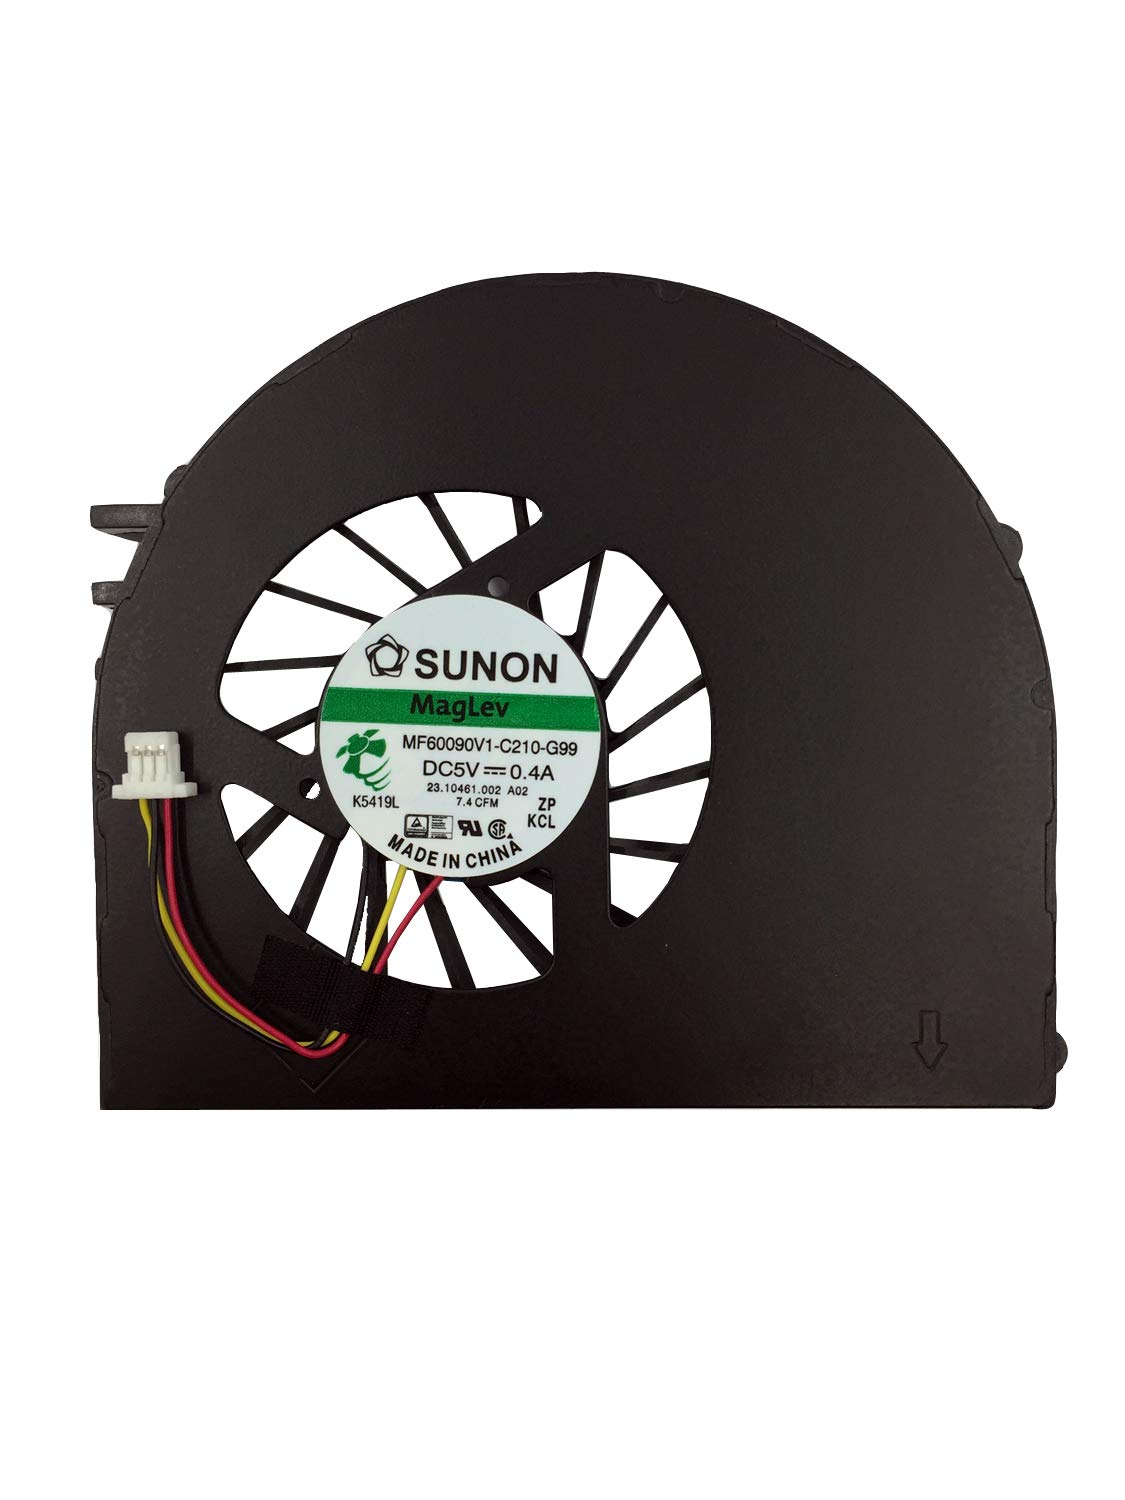 Asia New Power CPU Cooling Fan for DELL Inspiron 15R N5110 MF60090V1-C210-G99 23.10461.002 DFS501105FQ0T FA80 A02 K5419L